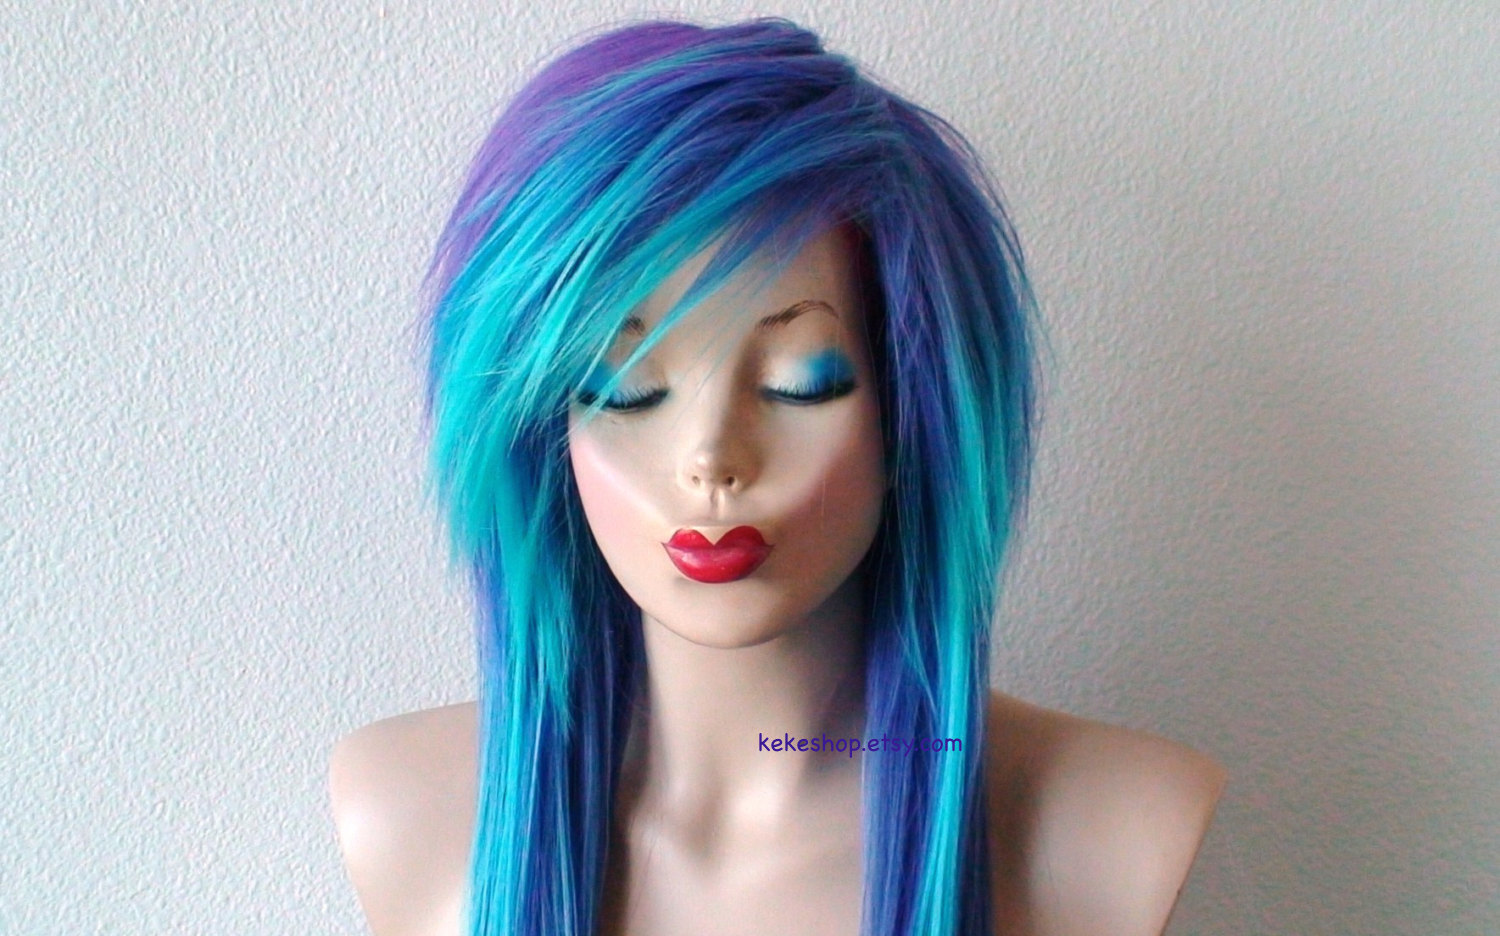 Red Hair clipart emo hair Straight side wig Teal/ wig